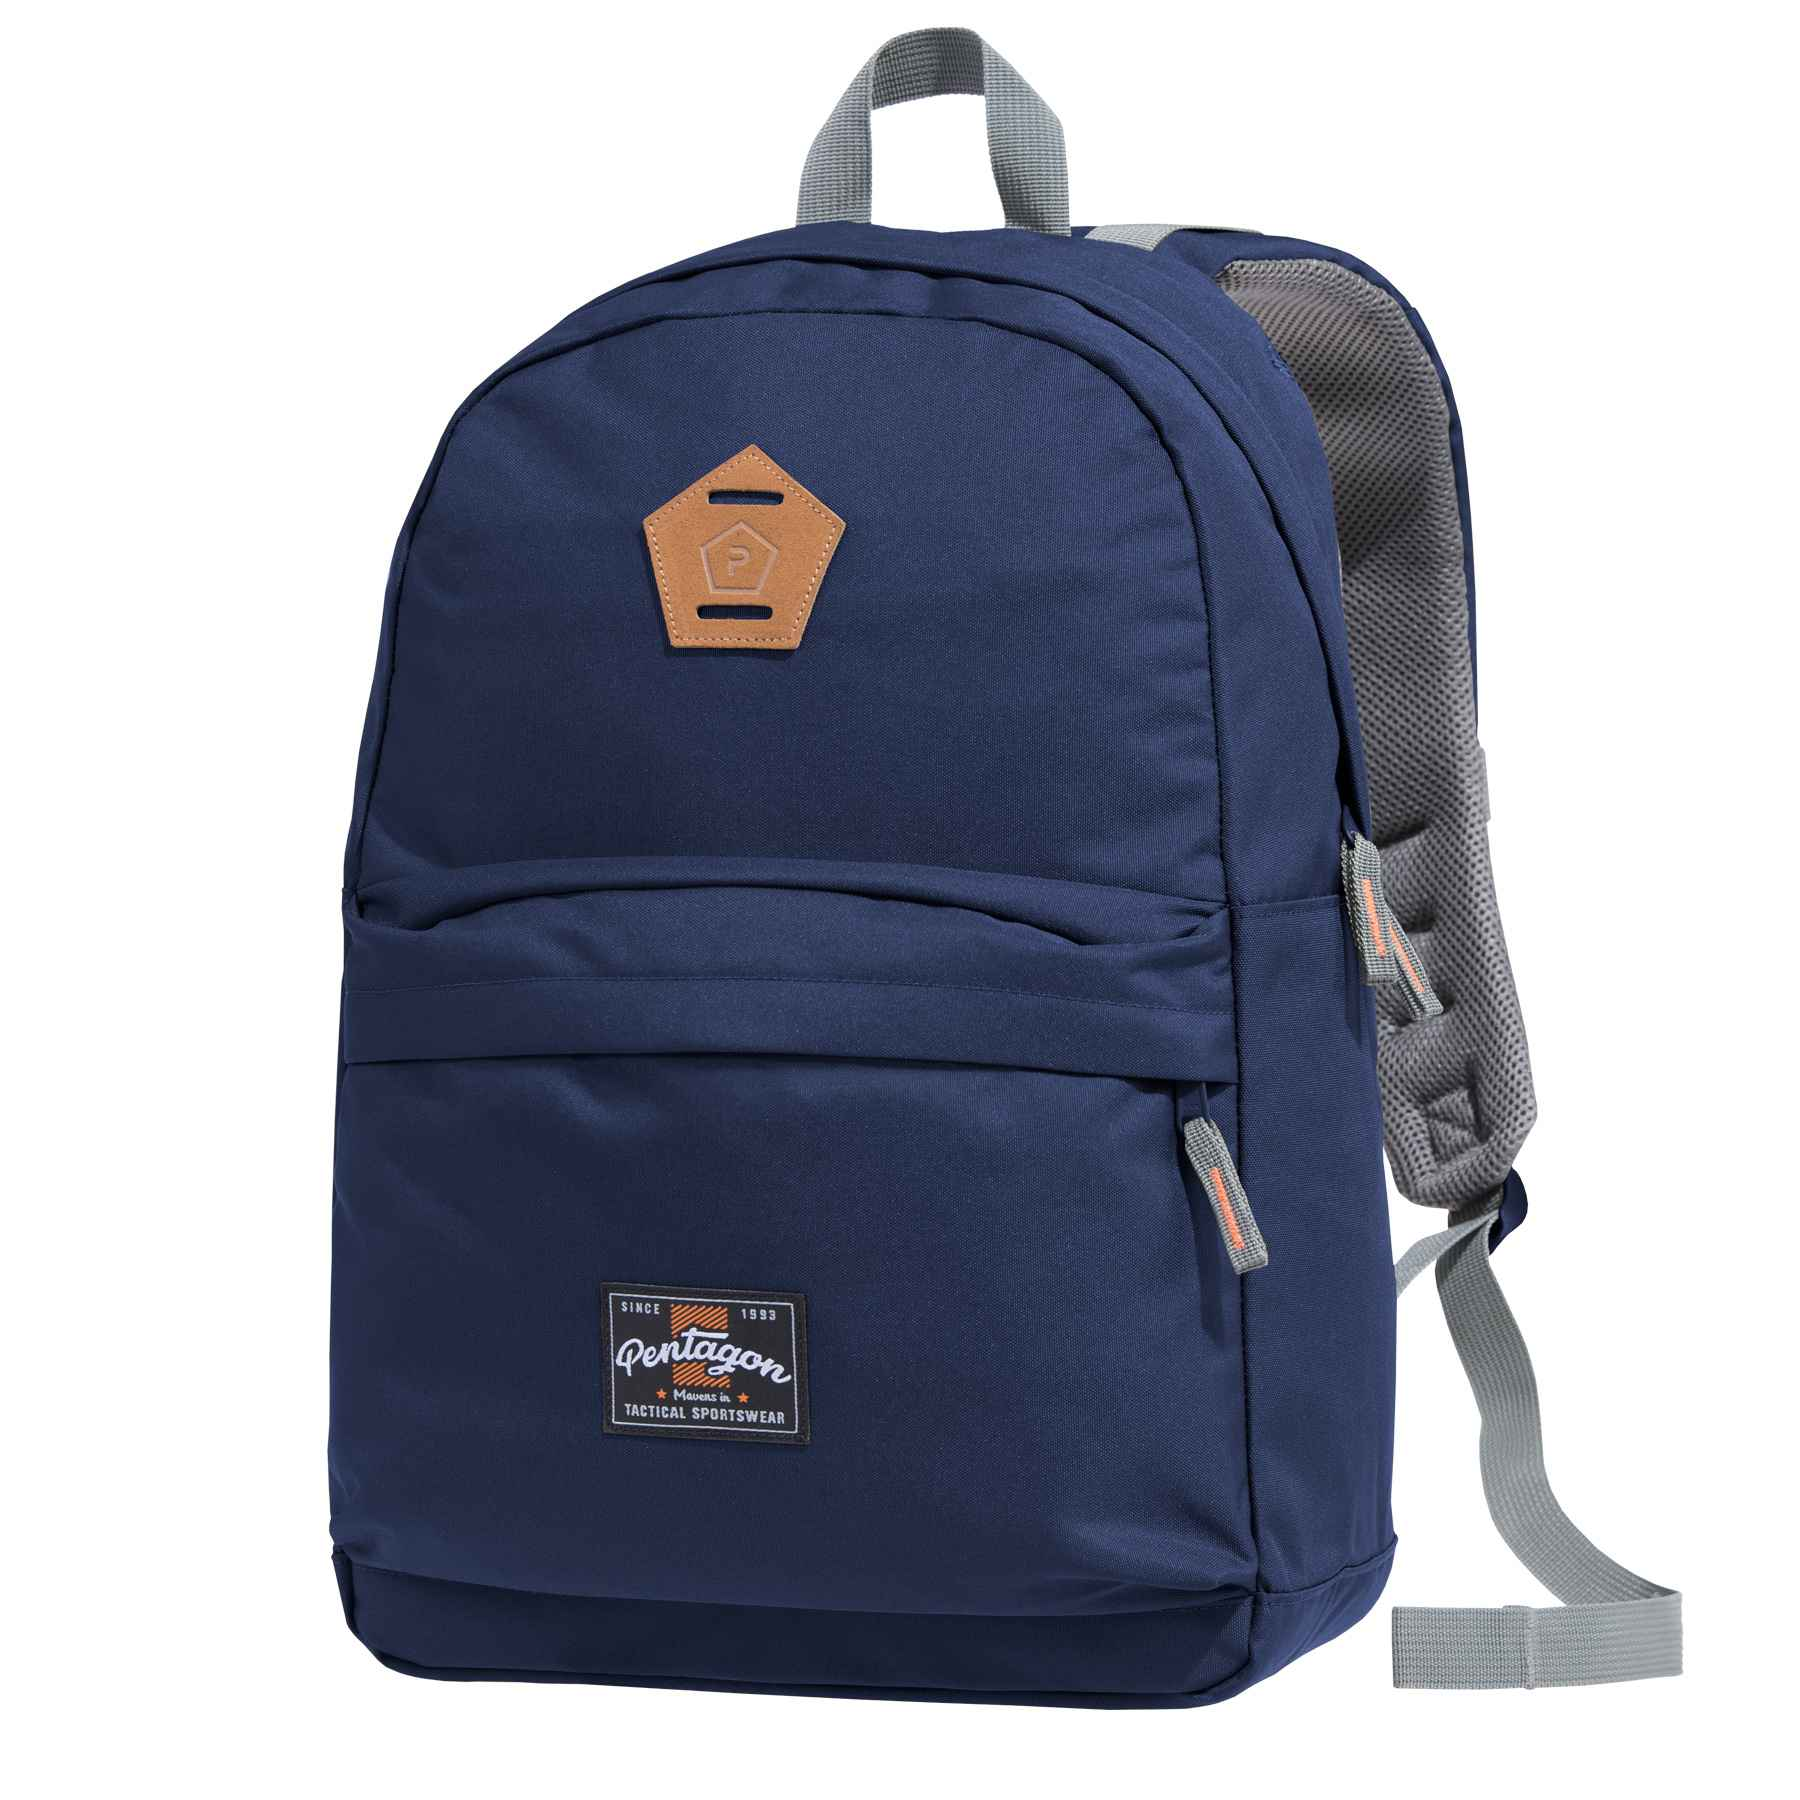 batoh ARTEMIS midnight blue 22L